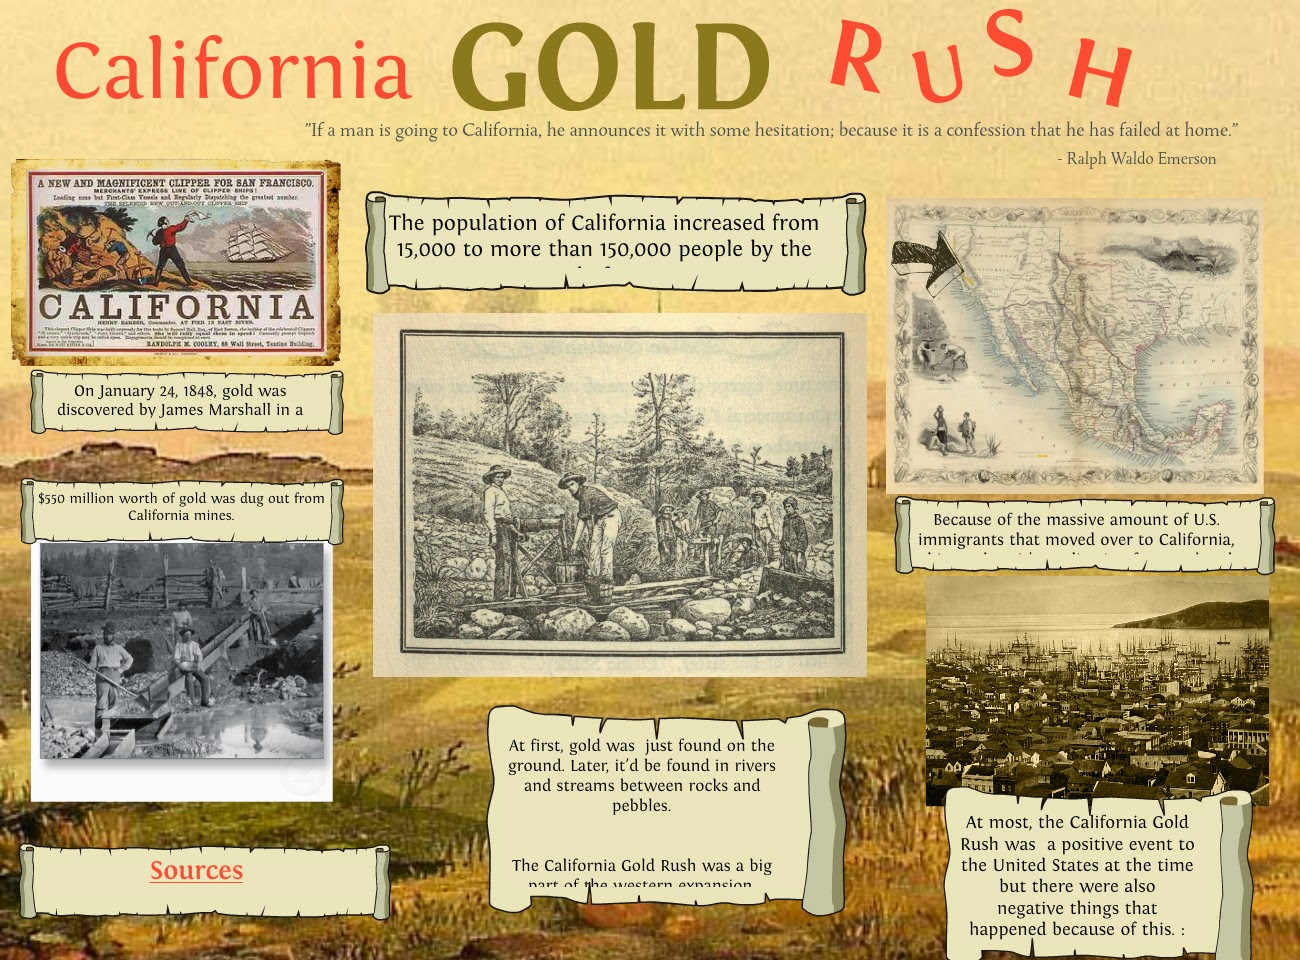 california gold rush of 1849 essay The california essay the california's gold rush of 1849 and how it changed and shaped america's west en1320 gold, since the beginning of civilization has been the focal point of wealth and power.